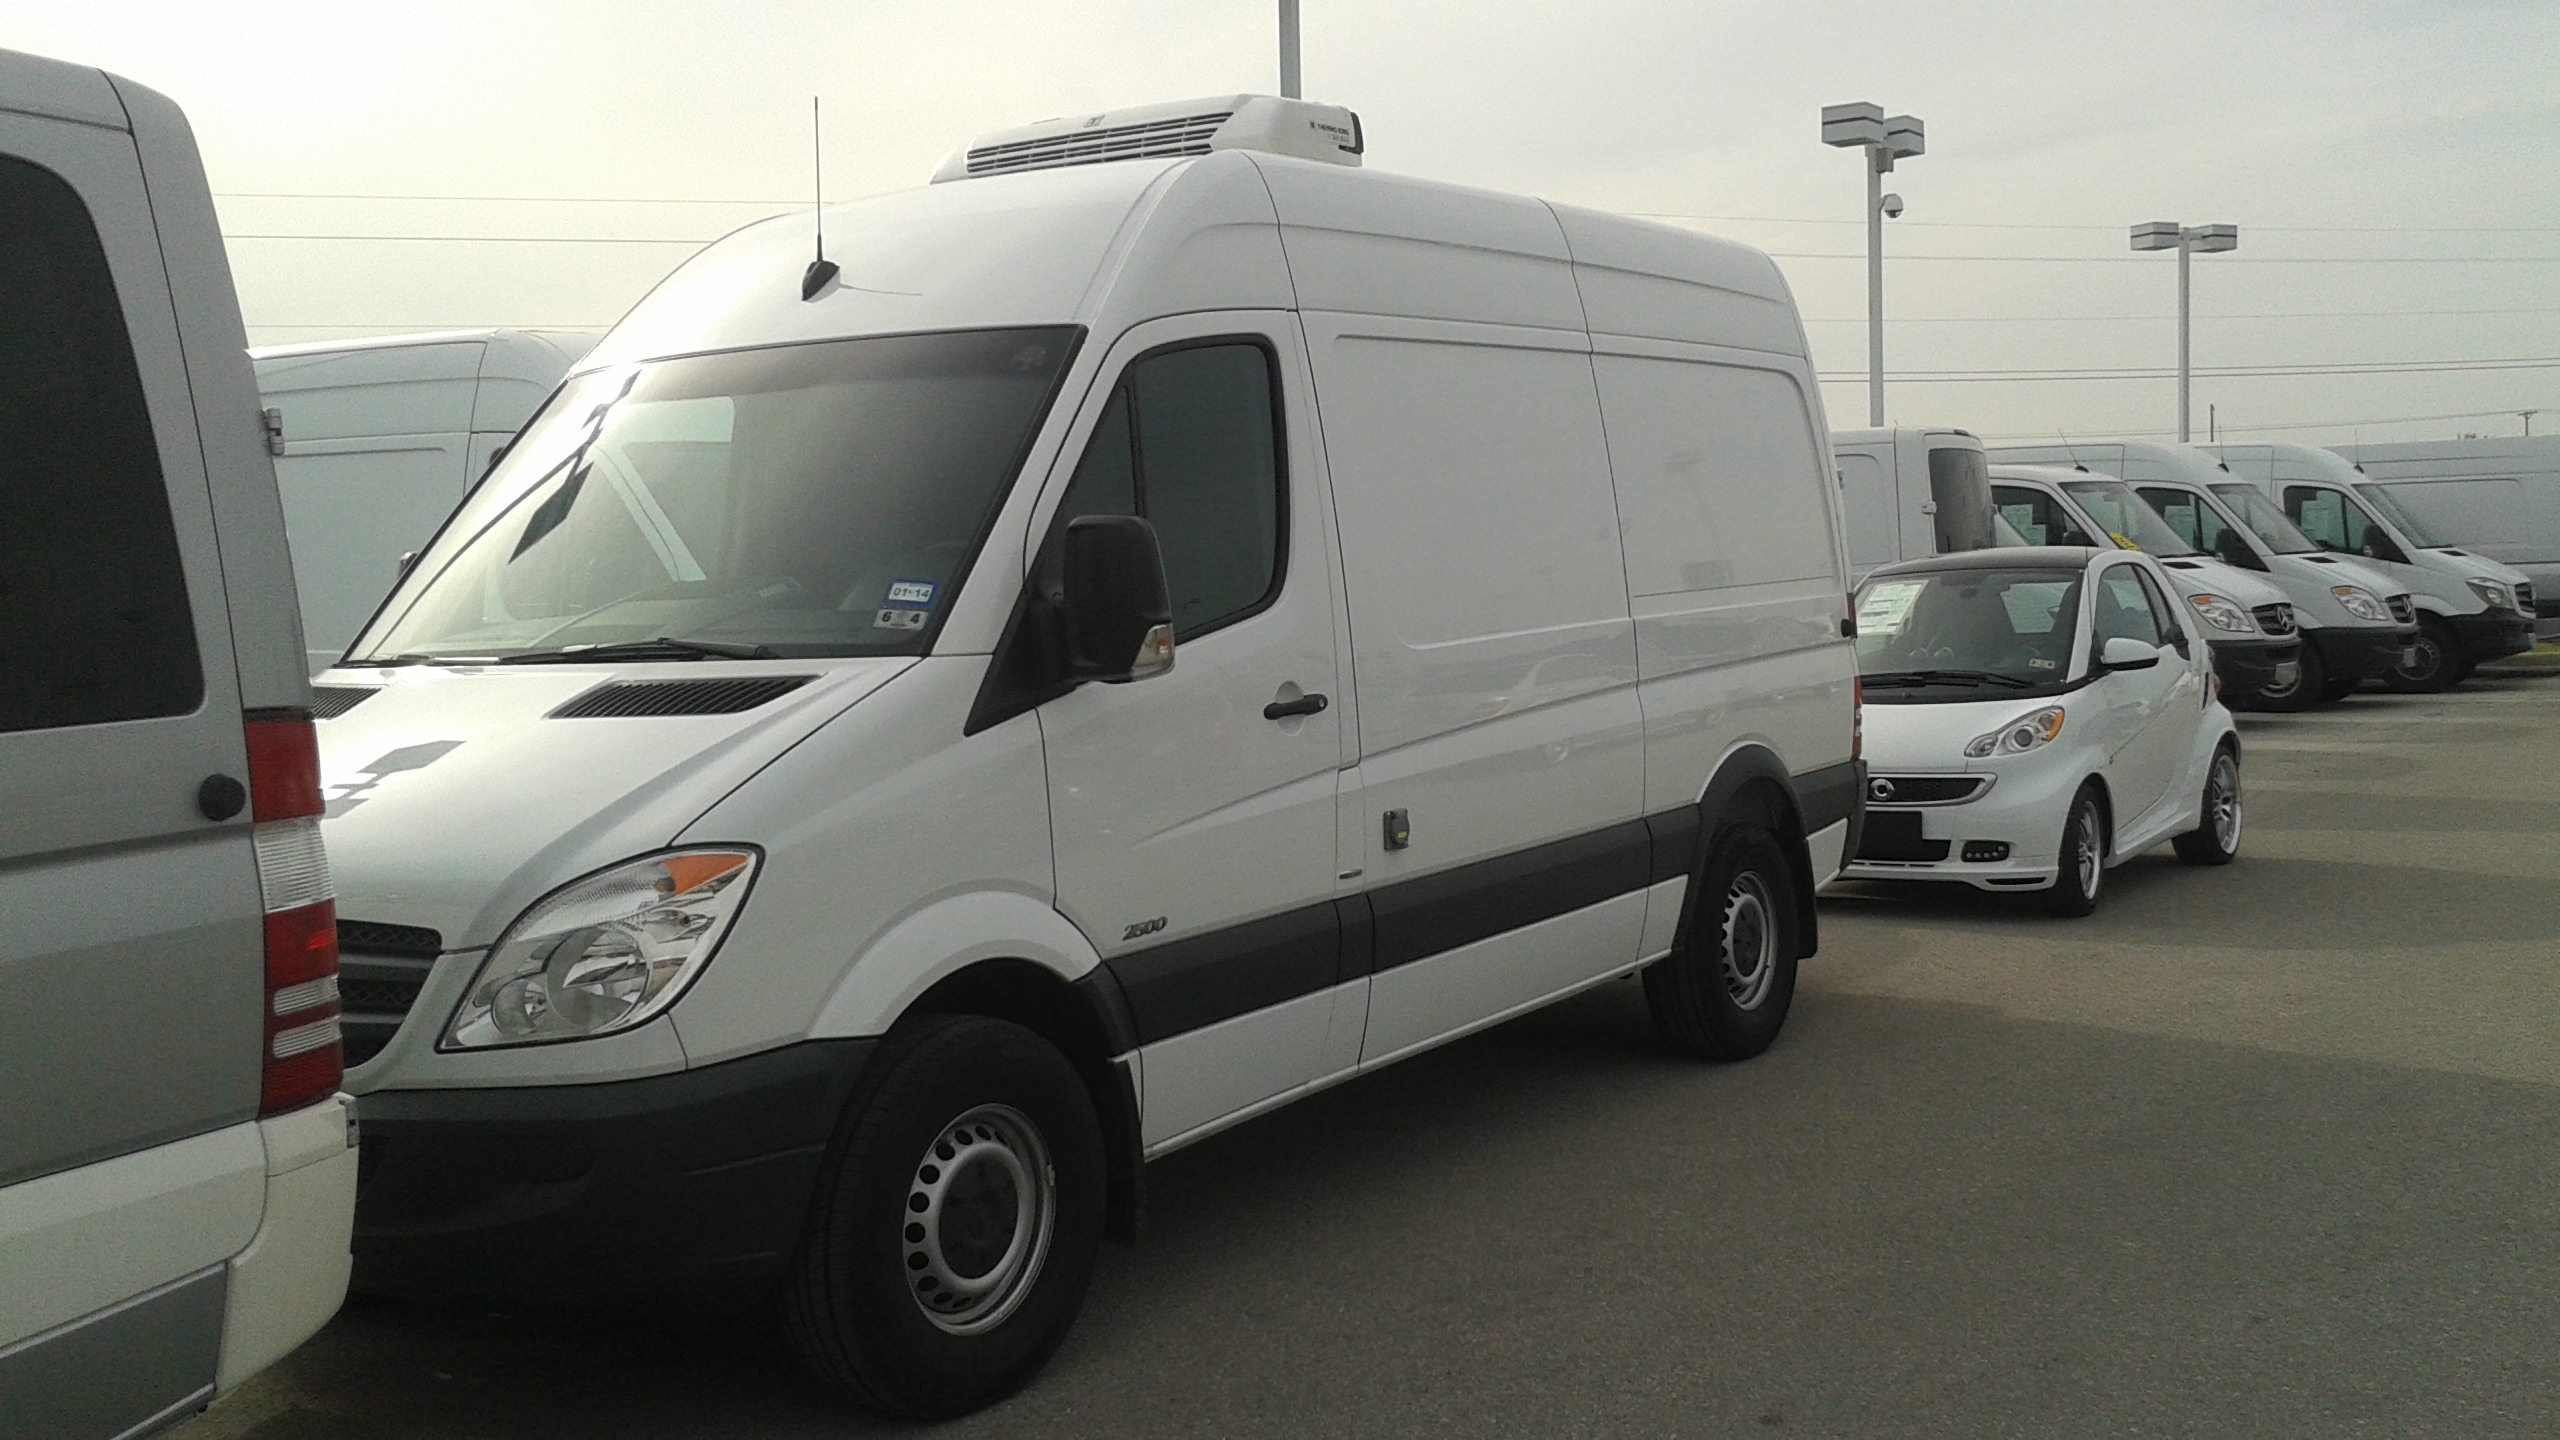 Just Arrived – 2012 Sprinter 144″ wb High Roof Cargo van